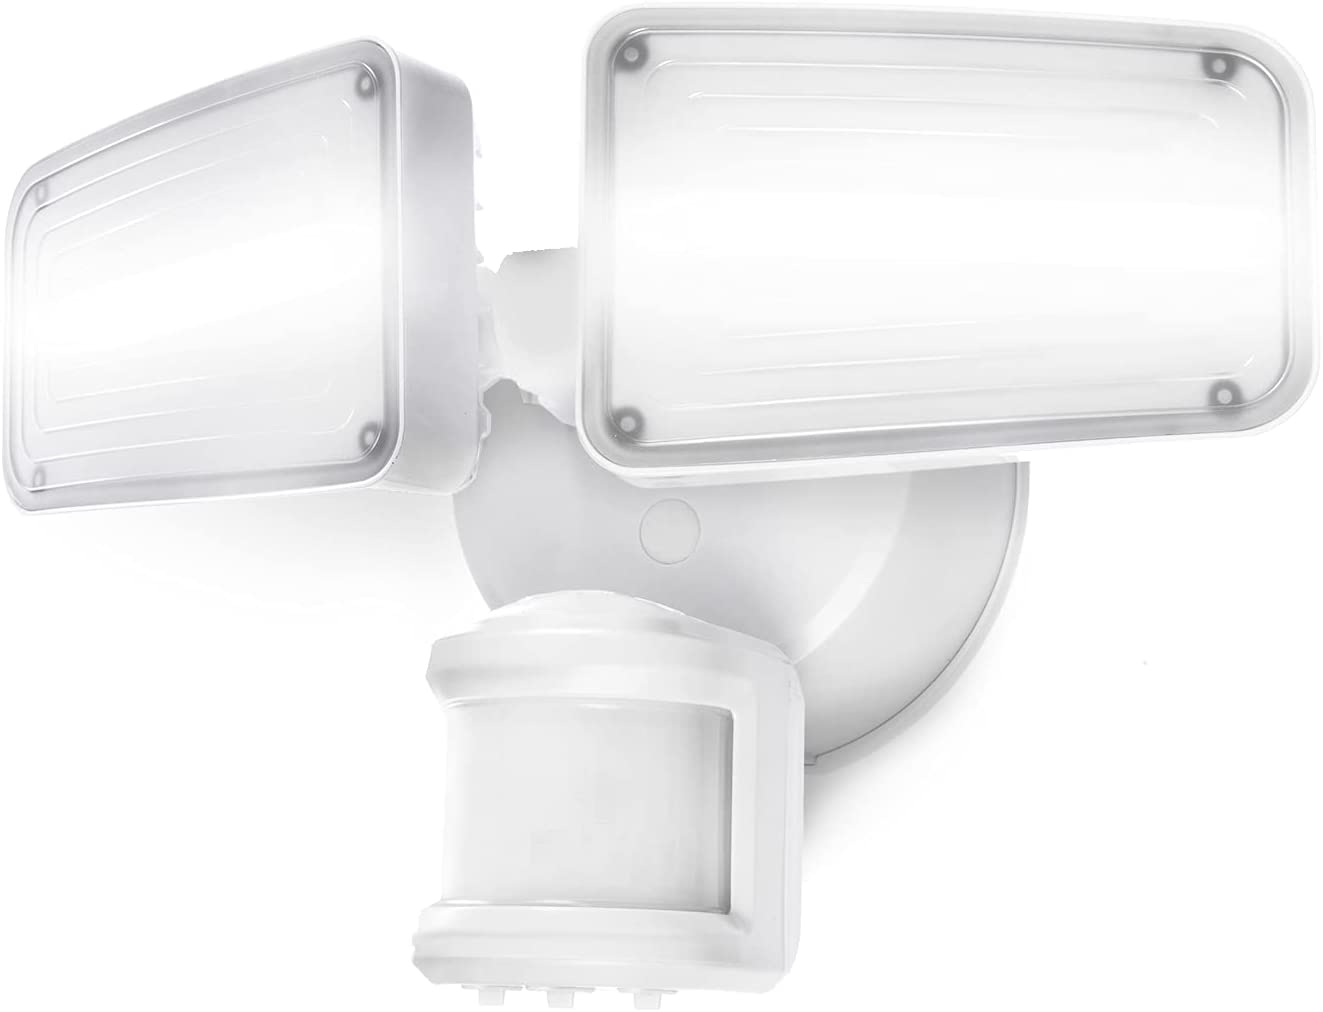 Home Zone Security Dual Brightness Motion Sensor Light - Outdoor Weather Resistant LED Twin Head 5000K Security Light with Standby Halo Light and Easy Connect Back Panel, White